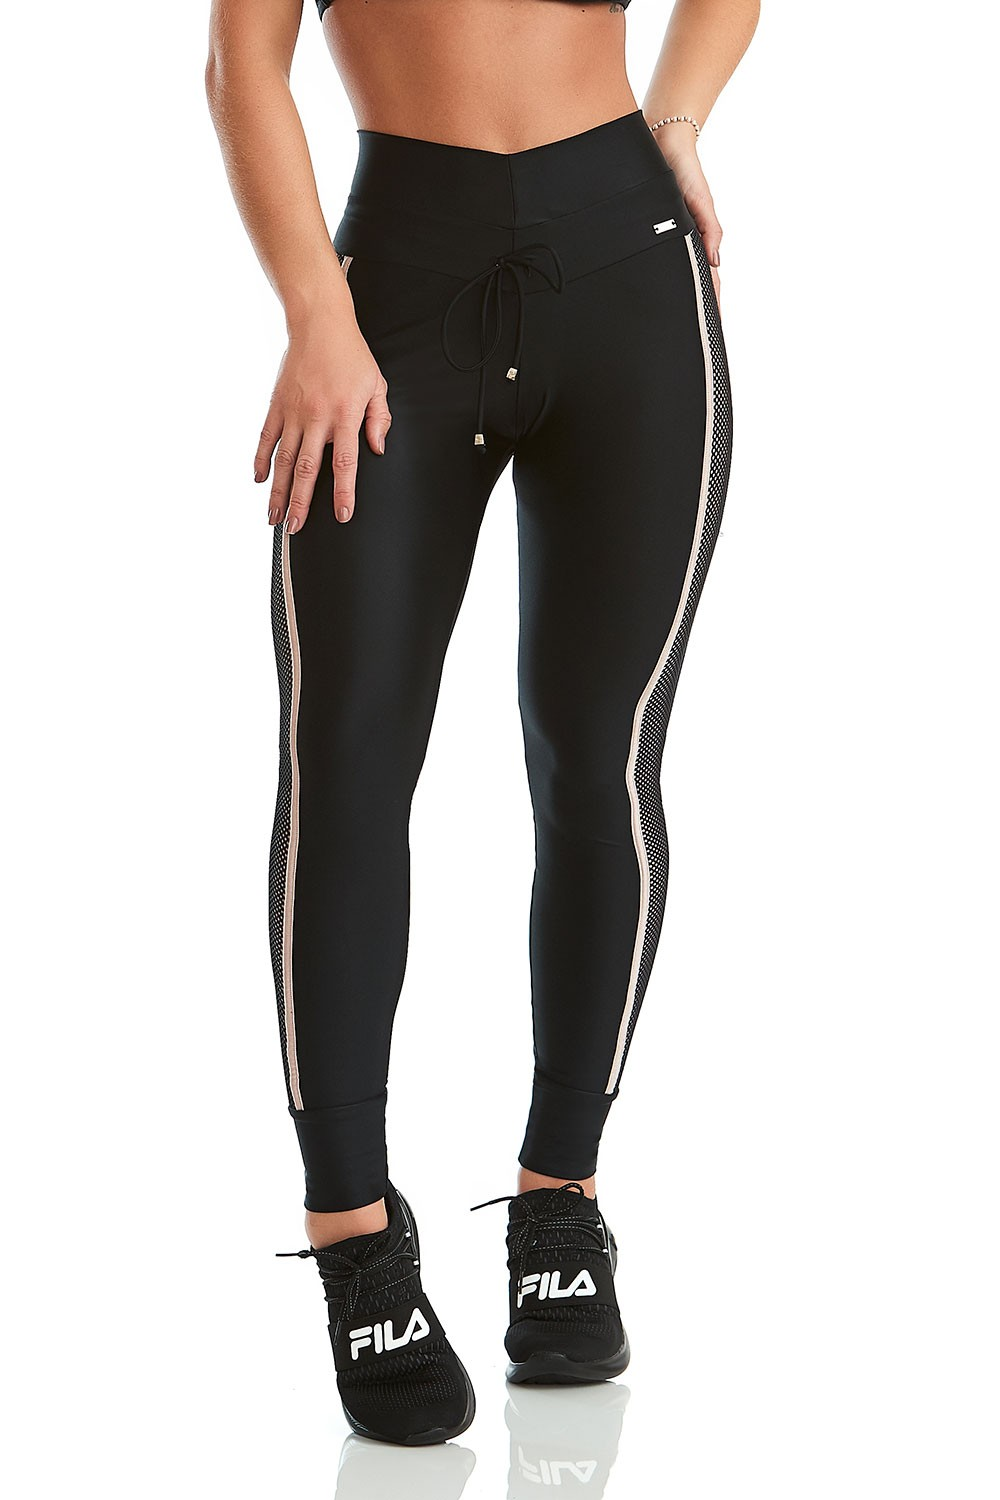 LEGGING ATLETIKA COURAGE CAJUBRASIL